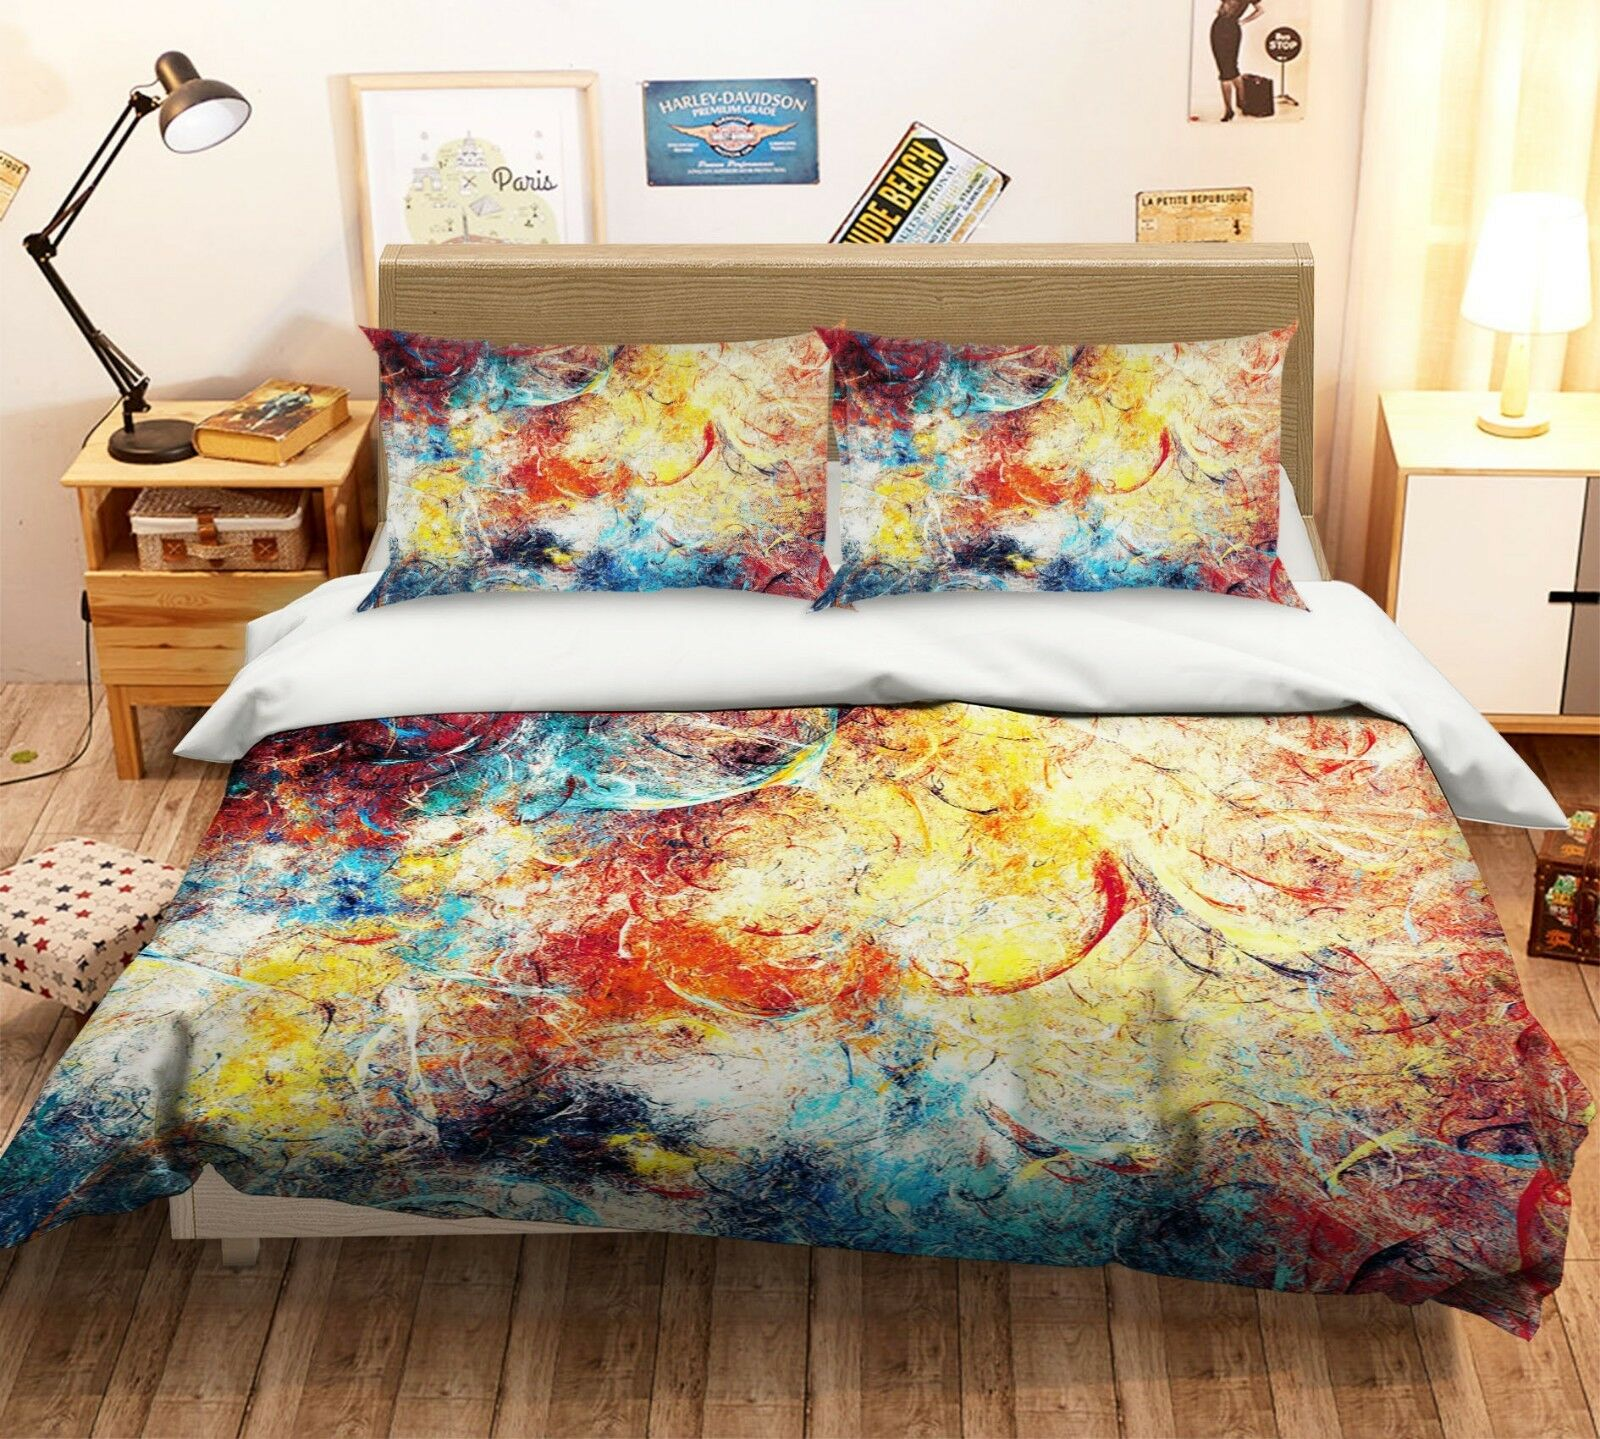 3d Graffiti restaurando 5 LETTO FEDERE steppe duvet set soffitto Single de